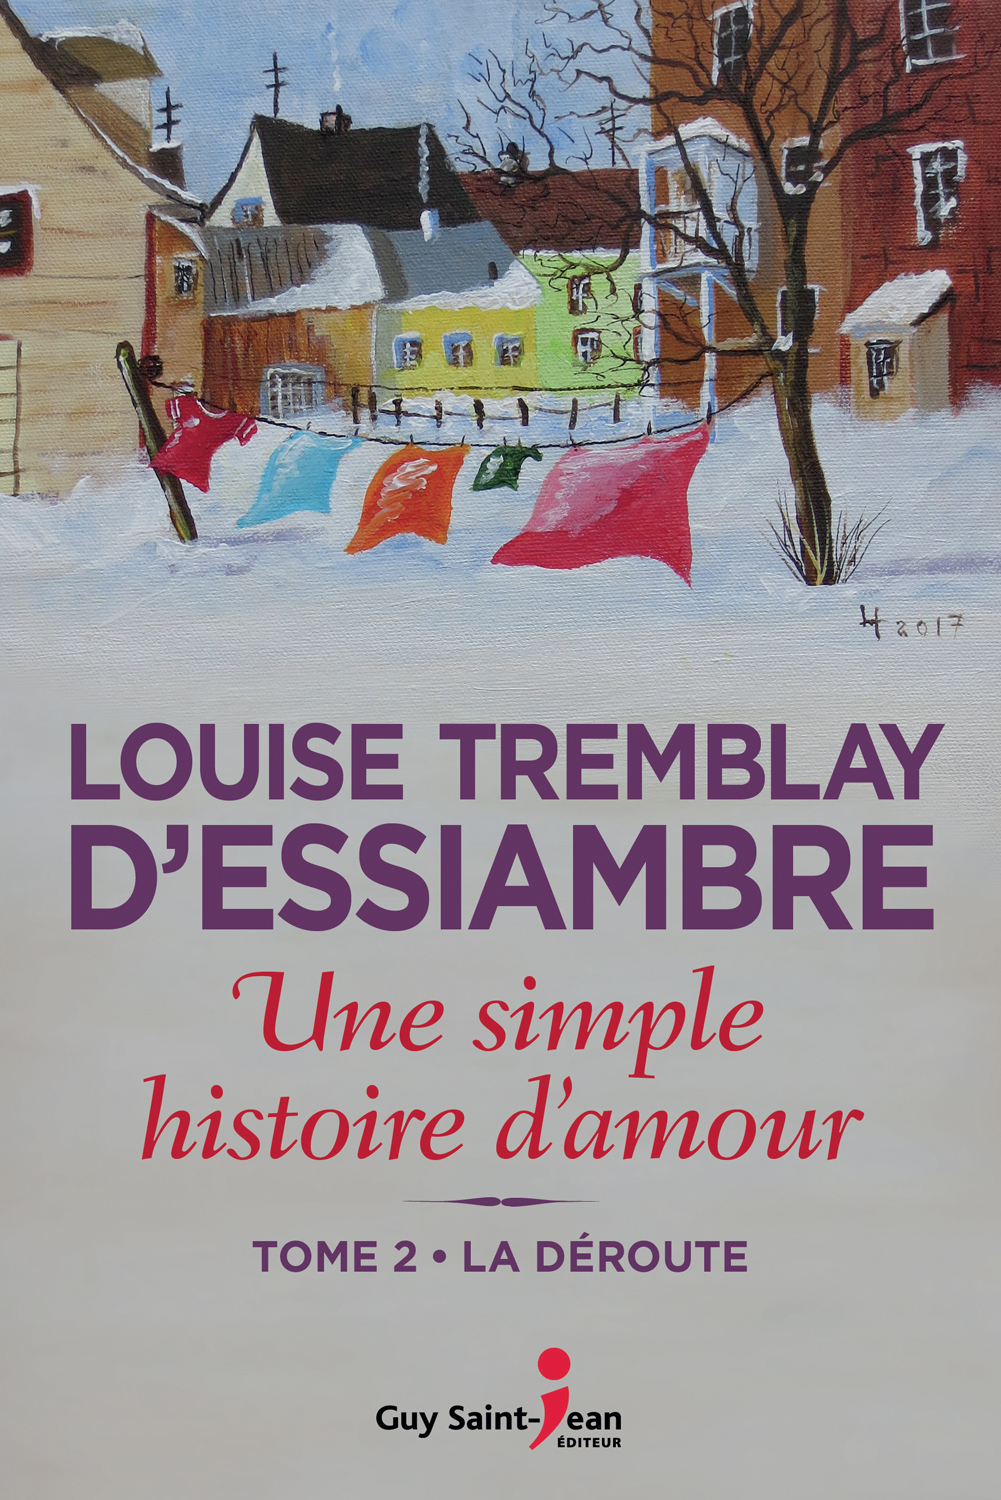 une simple histoire d 39 amour tome 2 la d route louise tremblay d 39 essiambre qu bec loisirs. Black Bedroom Furniture Sets. Home Design Ideas